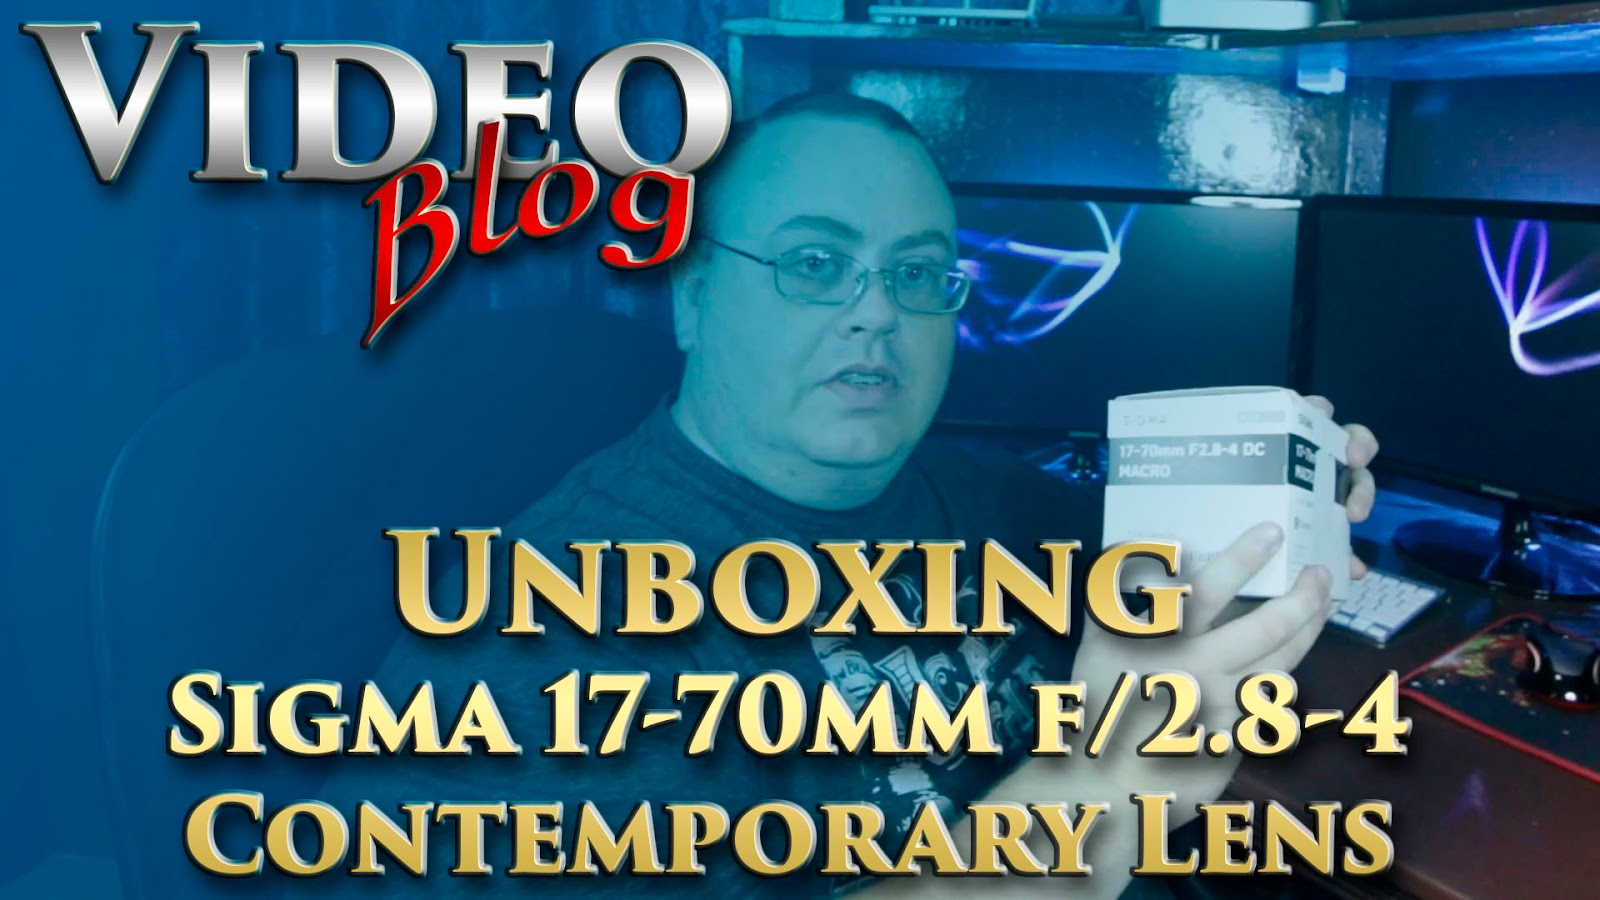 Sigma 17-70mm f/2.8-4 C Lens Unboxing